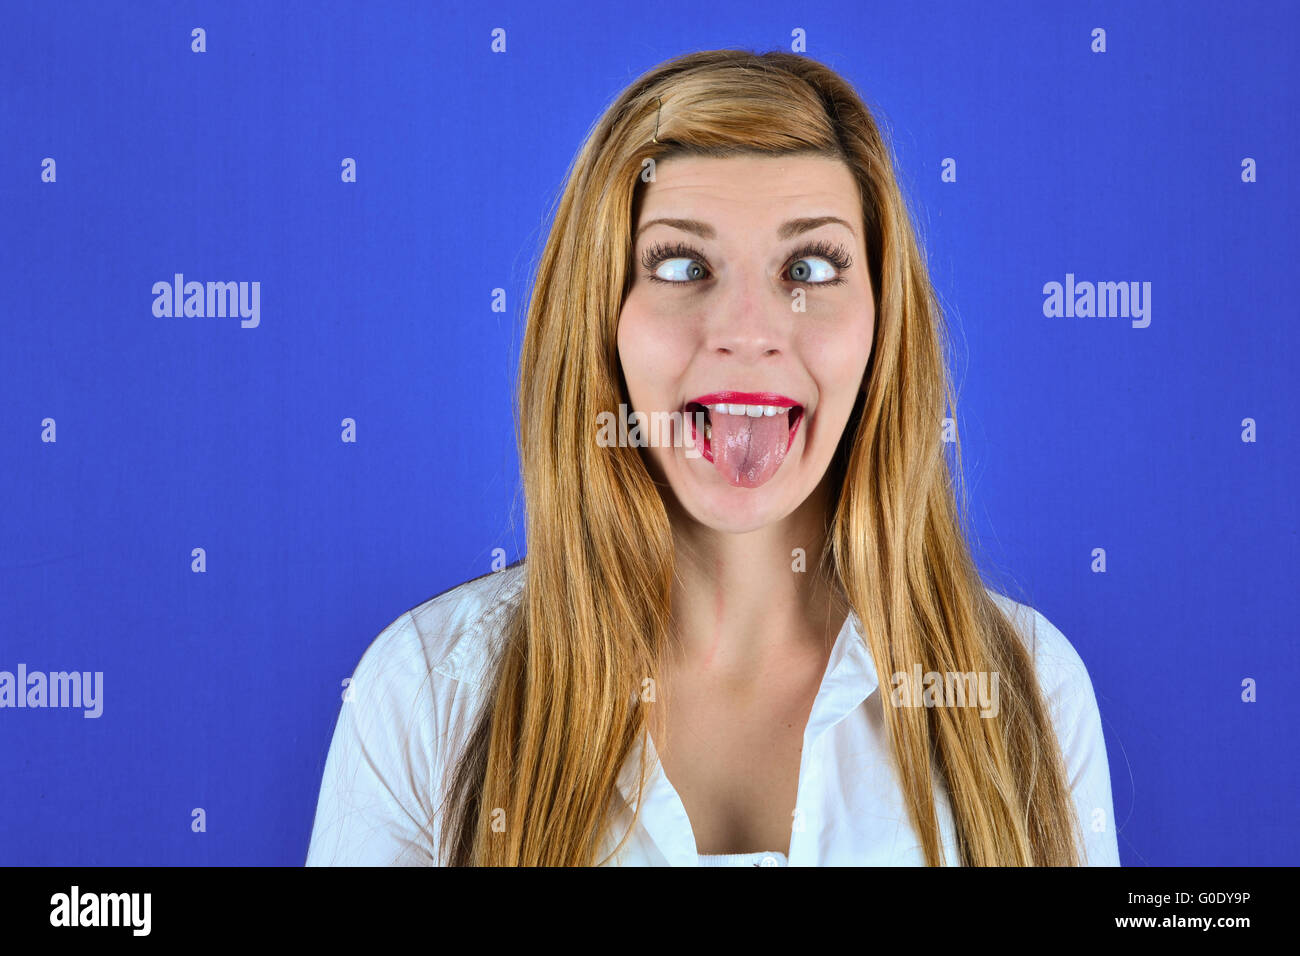 Woman in front of a blue background - Stock Image